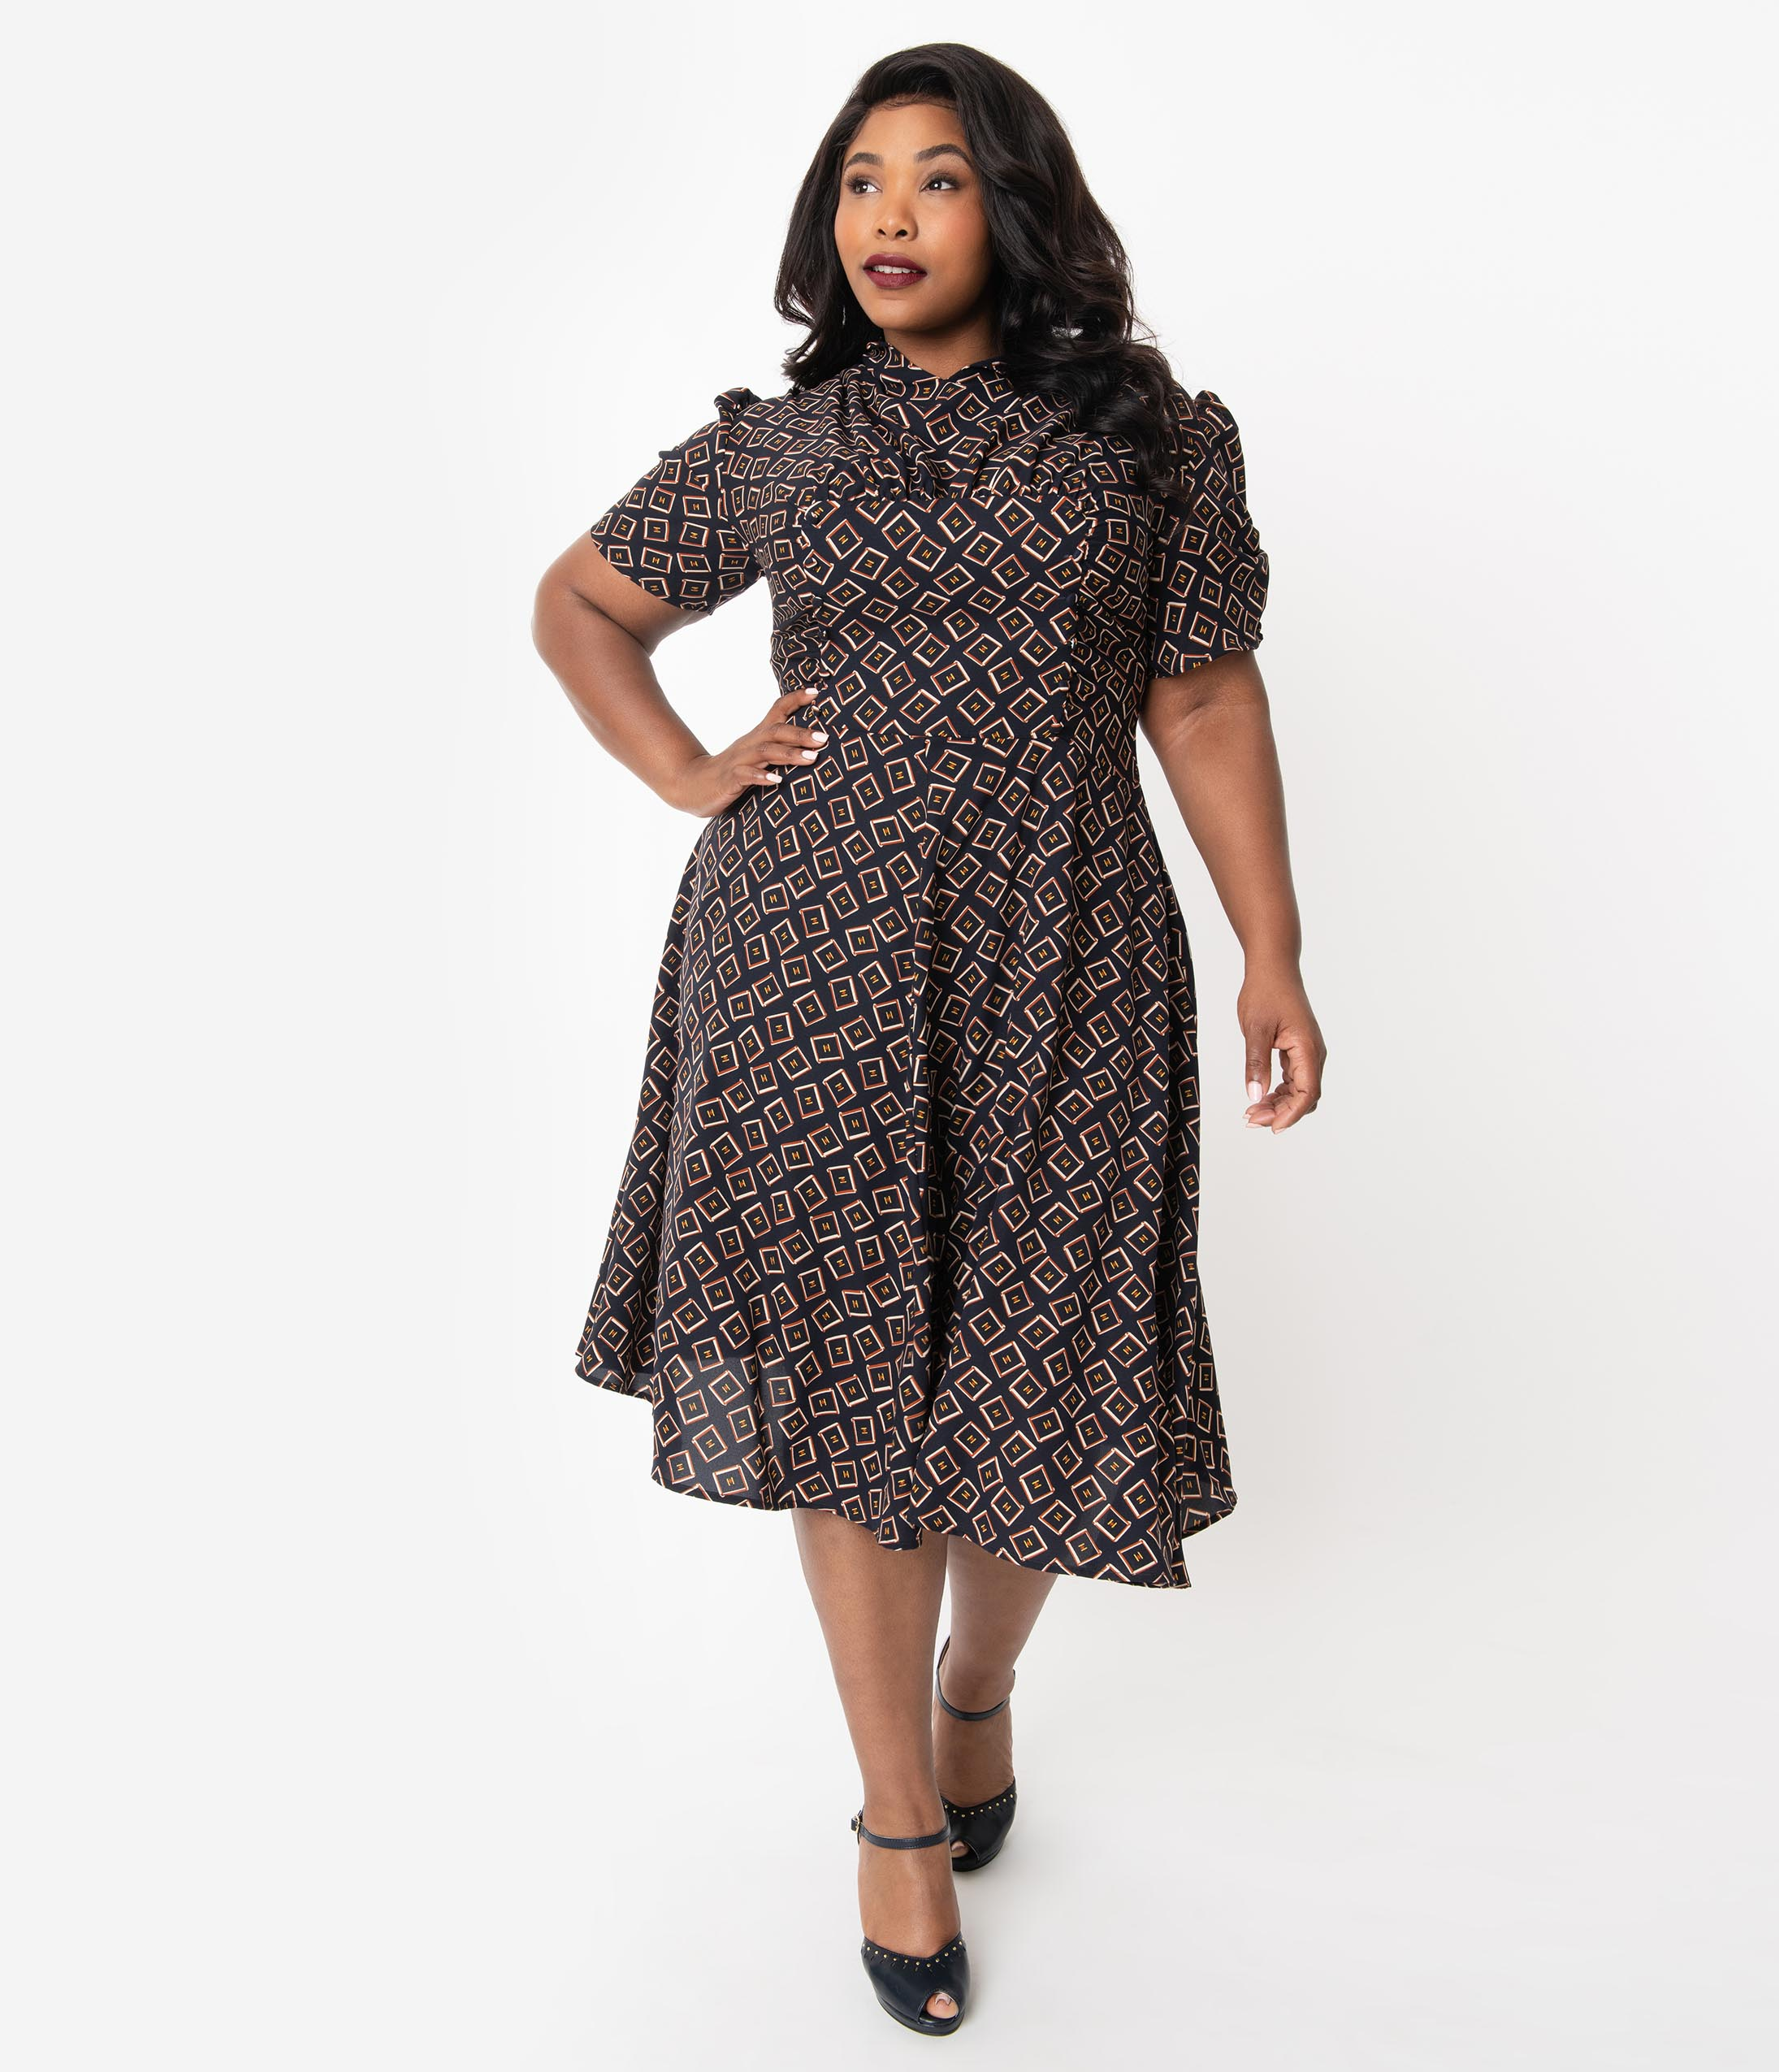 1940s Dresses | 40s Dress, Swing Dress Unique Vintage Plus Size 1940S Style Black Box Print Camilla Midi Dress $88.00 AT vintagedancer.com